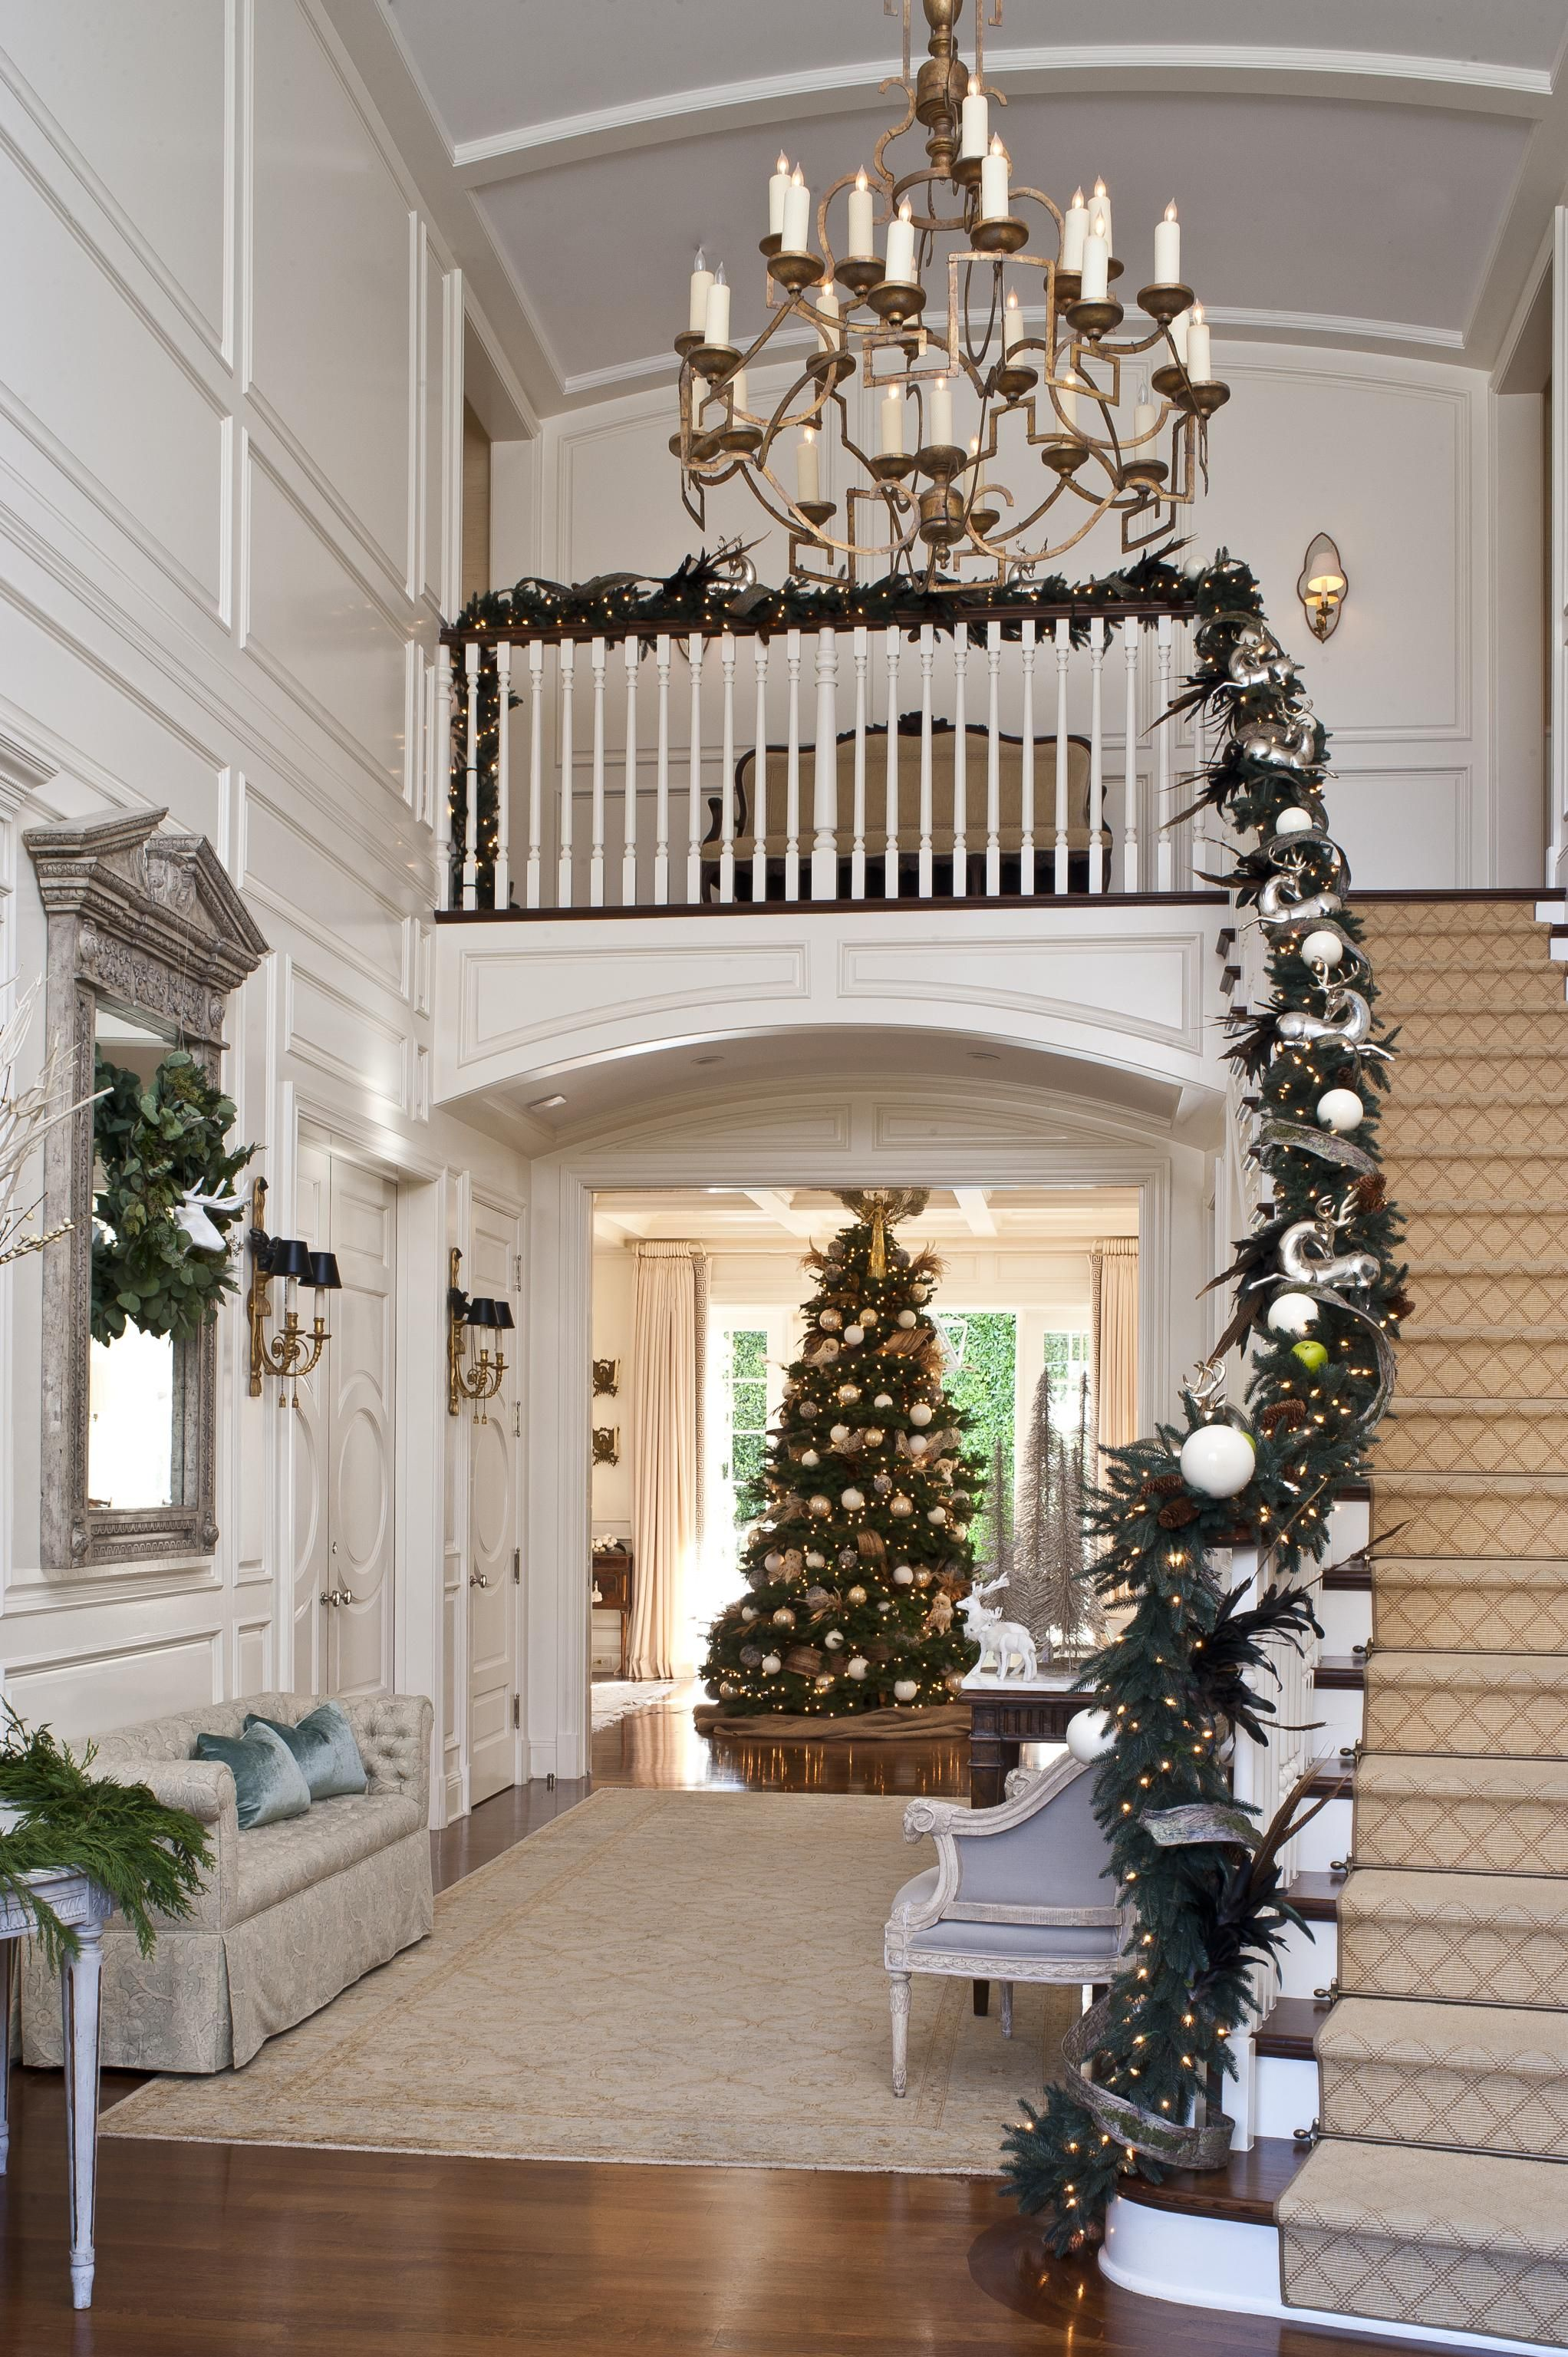 Festive Holiday Staircases And Entryways In 2018 New Entry